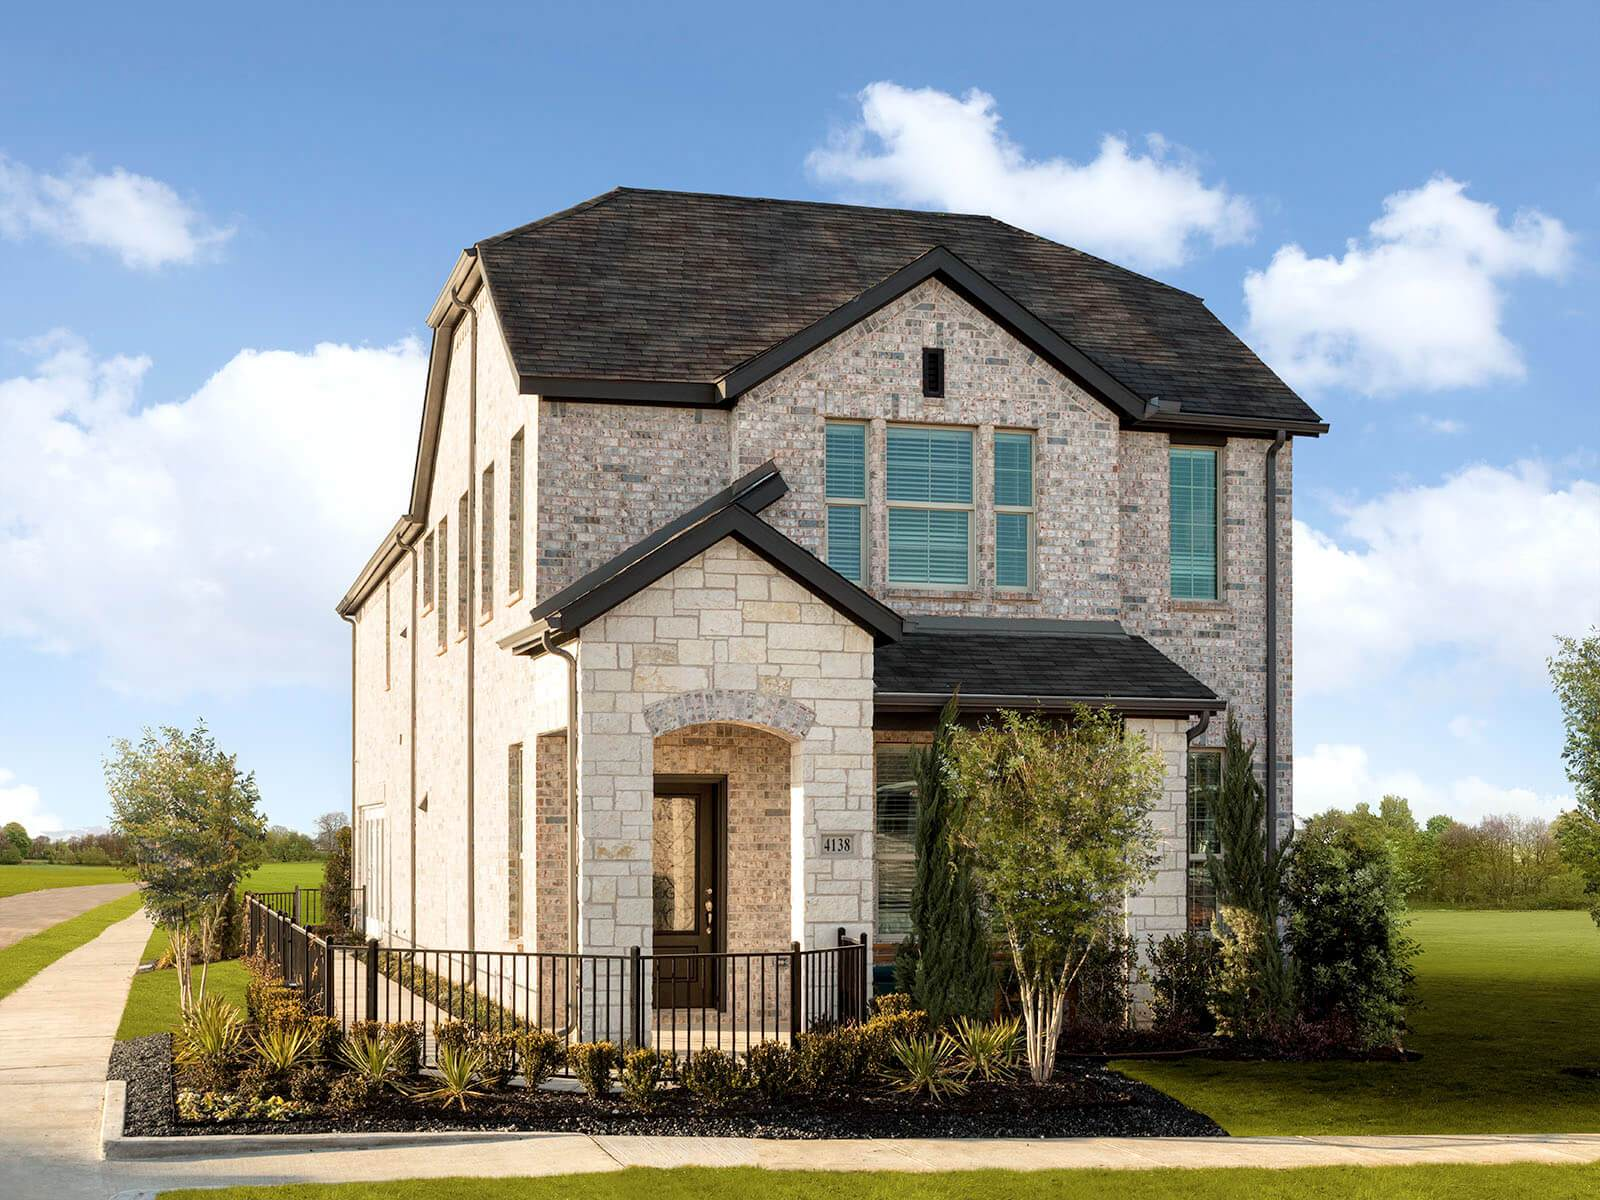 The beautiful Harrow model, featured at Ranch Park Village.